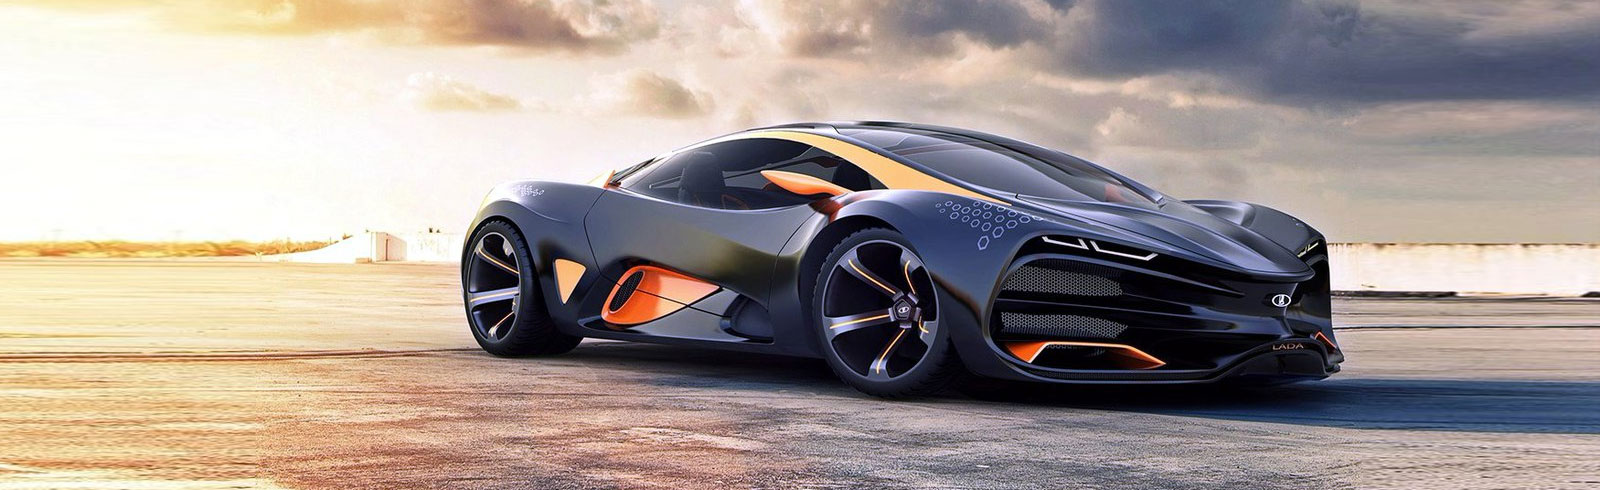 Scandalous Lada Raven is reborn, will be Russia's competitor to Tesla